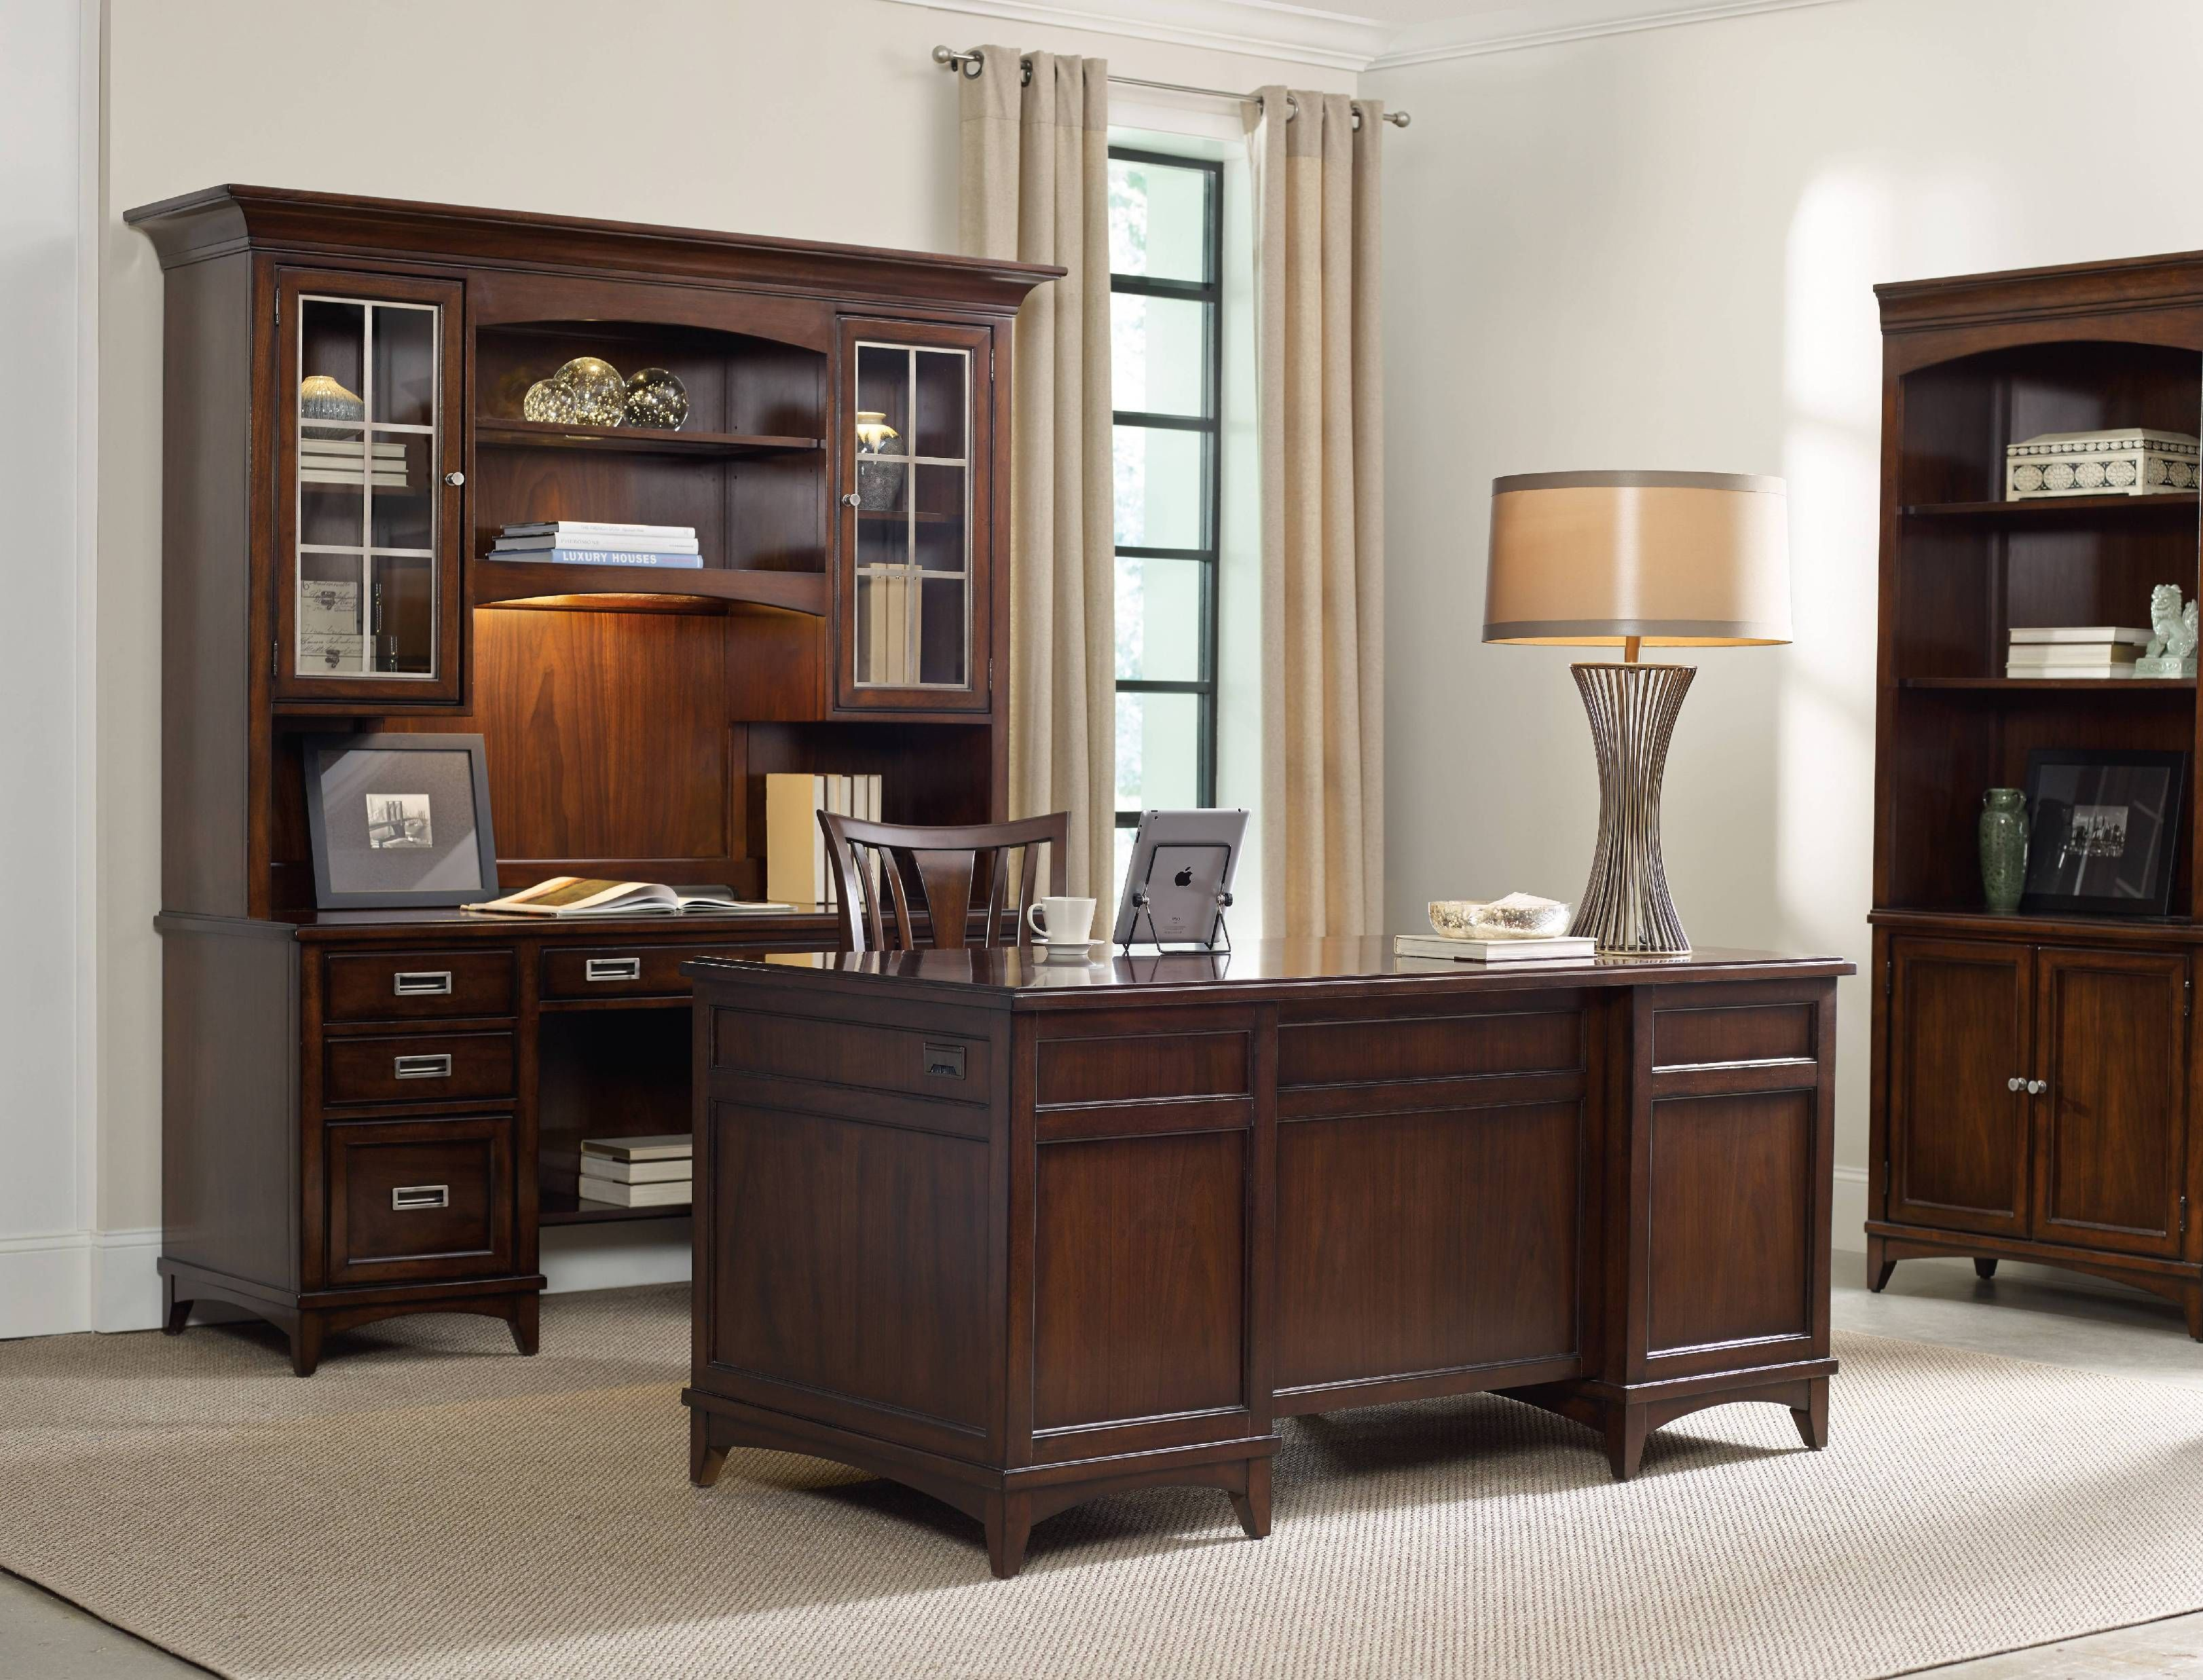 Hooker Furniture Home Office Latitude Executive Desk 5167 10562   Ramsey  Furniture Company   Covington. Hooker Furniture Home Office Latitude Executive Desk 5167 10562